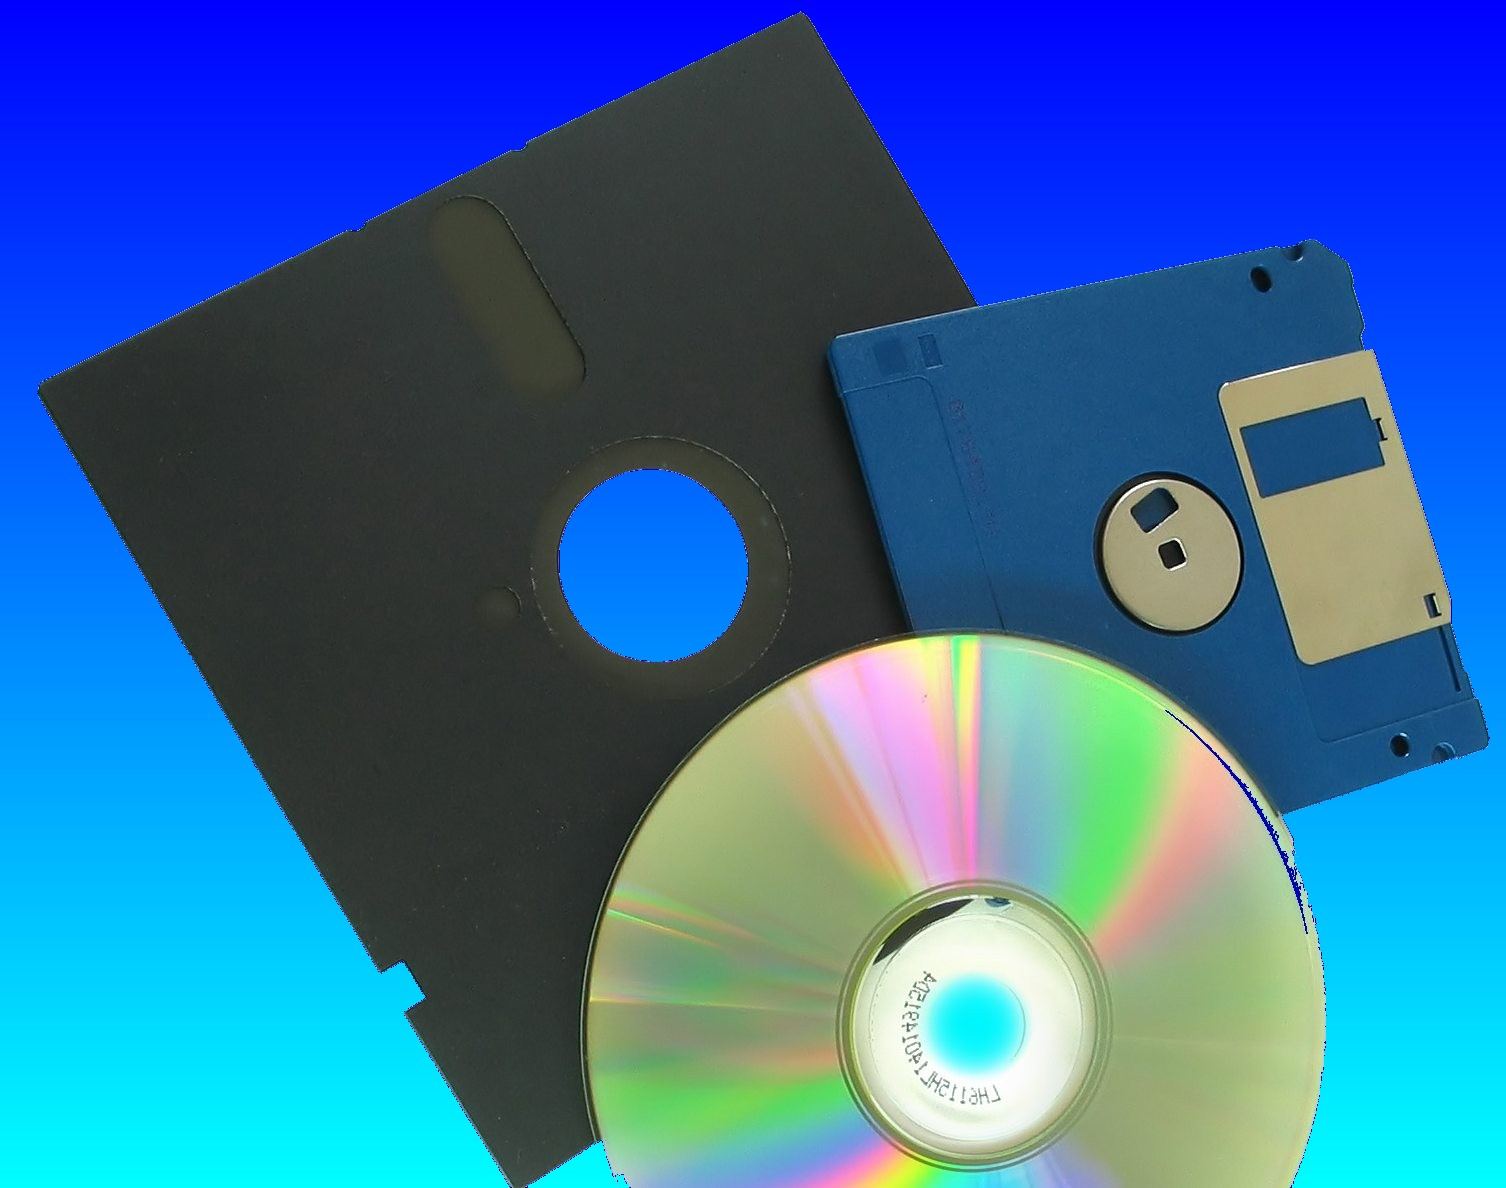 Transferring data and files from old legacy 5.25 floppy disks.